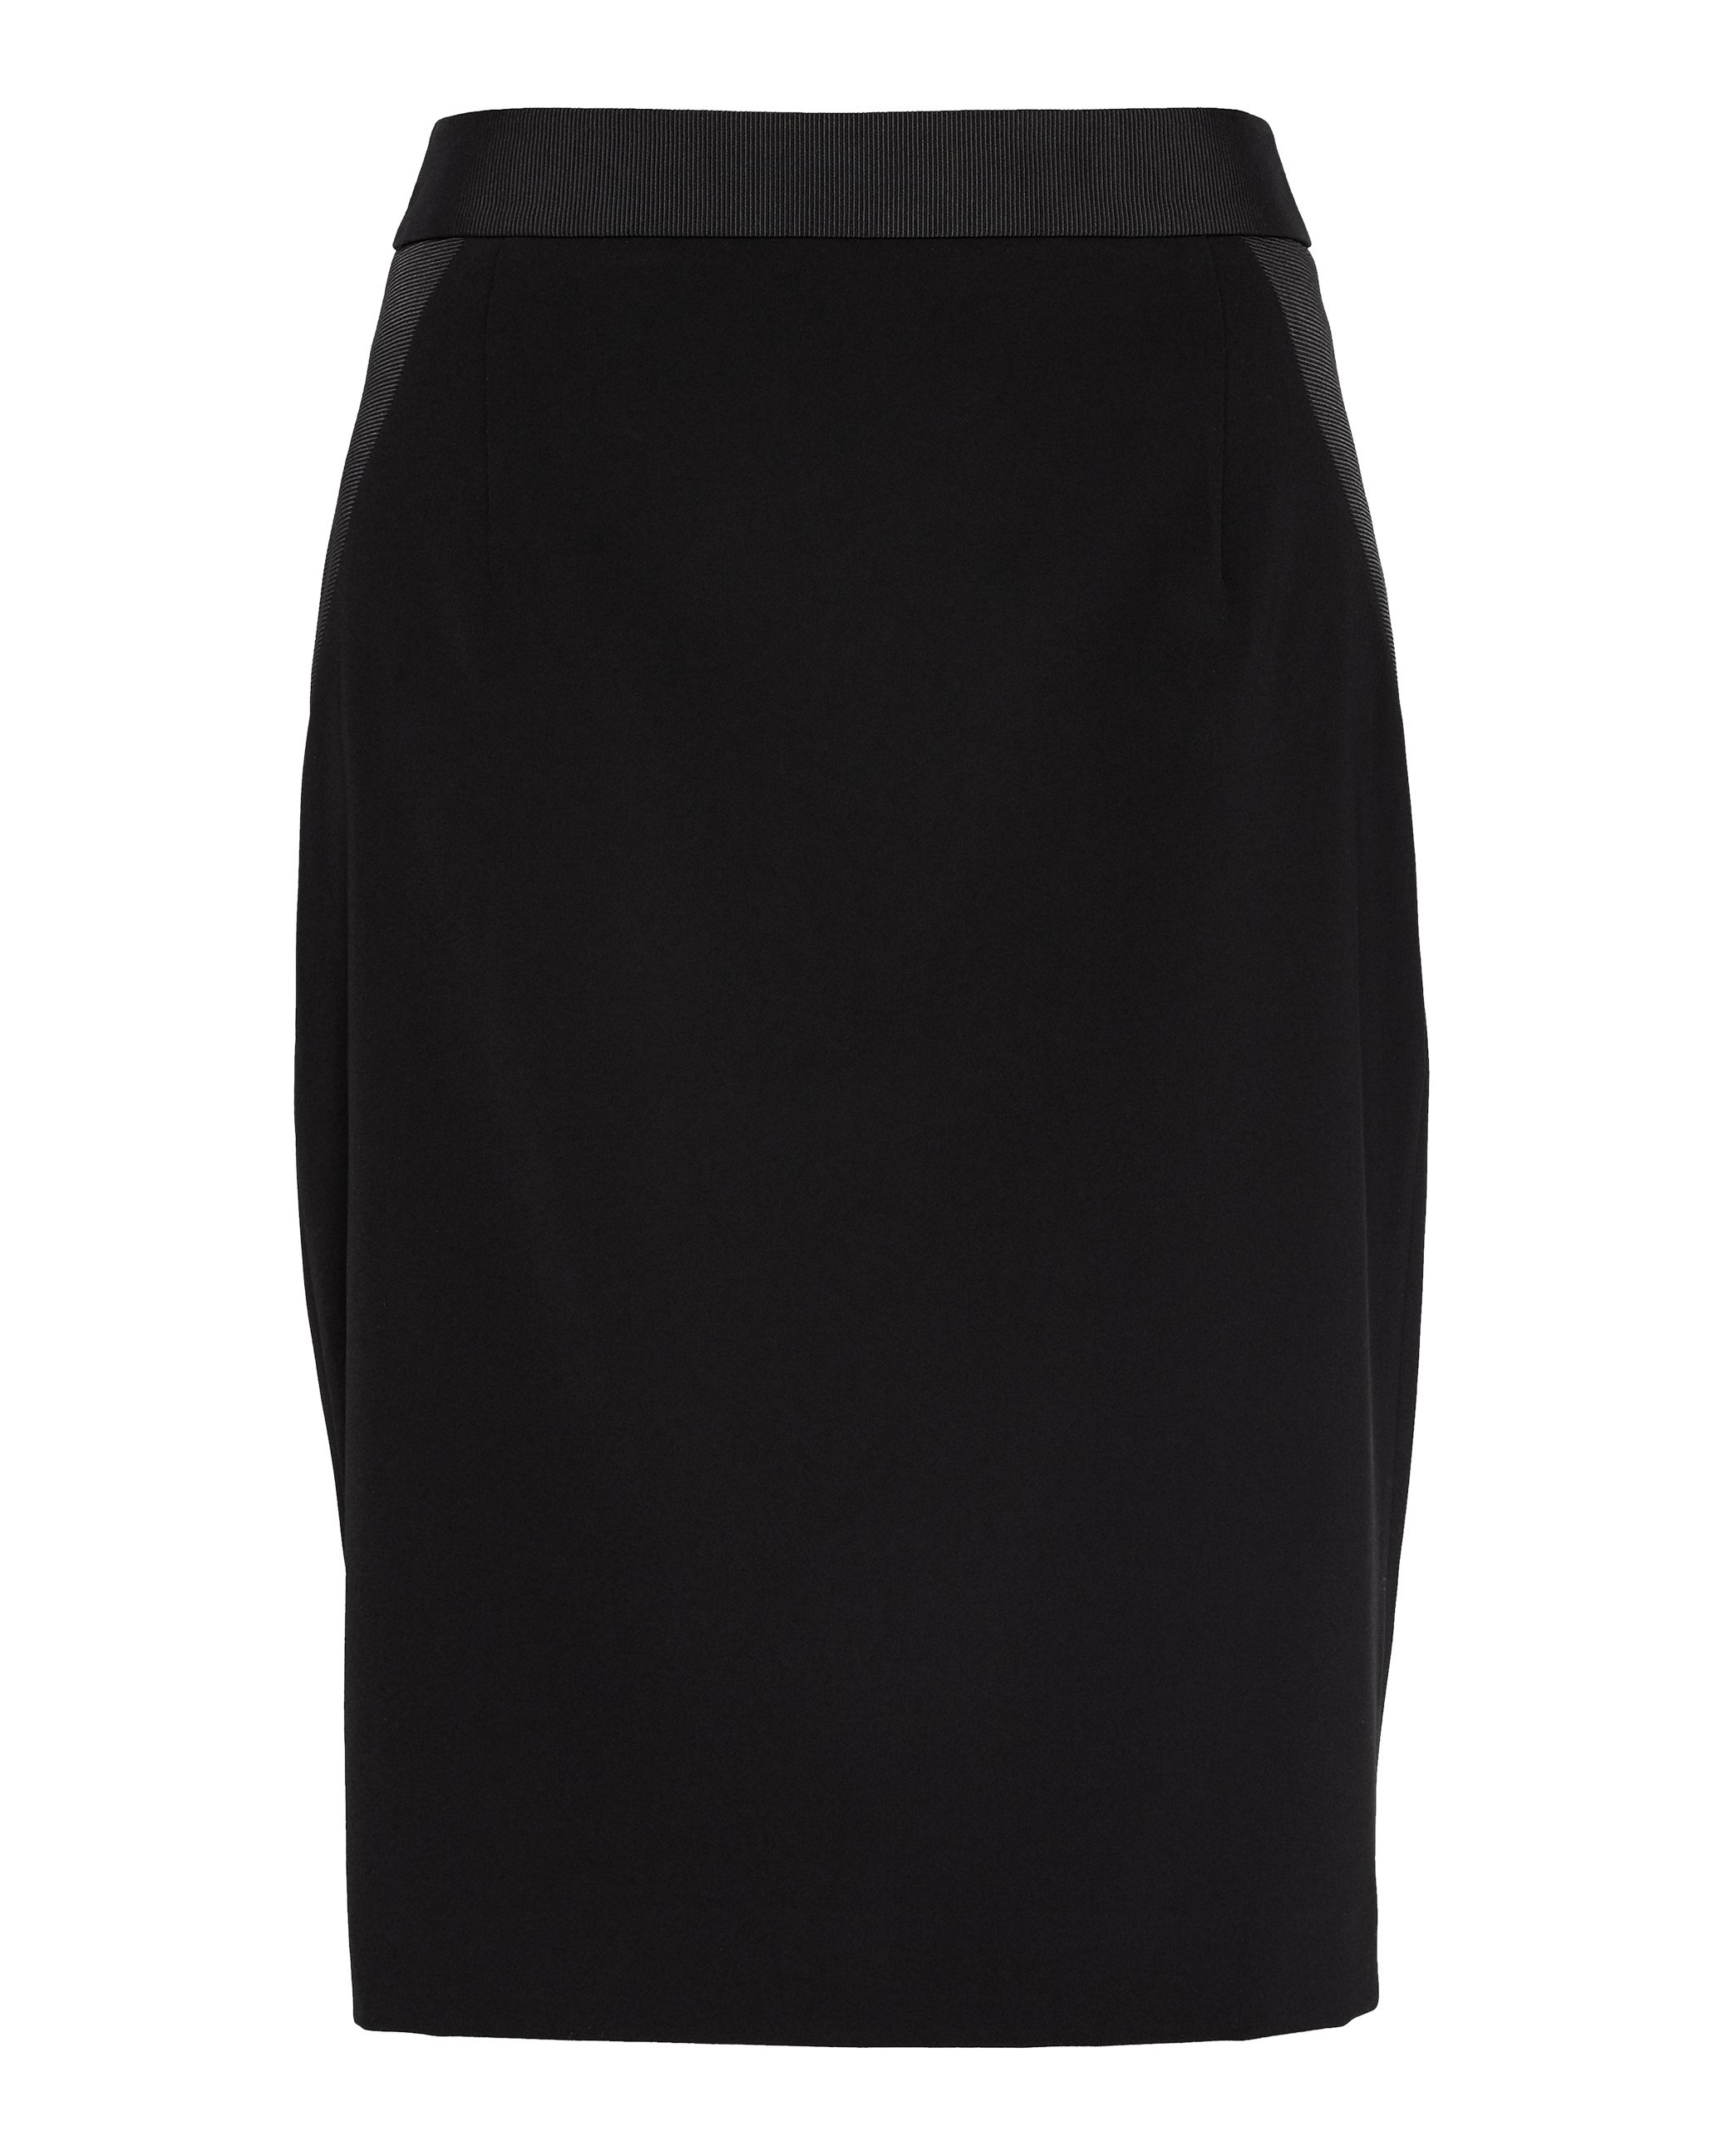 Ted Baker Shillis Ottoman Contrast Pencil Skirt, Black